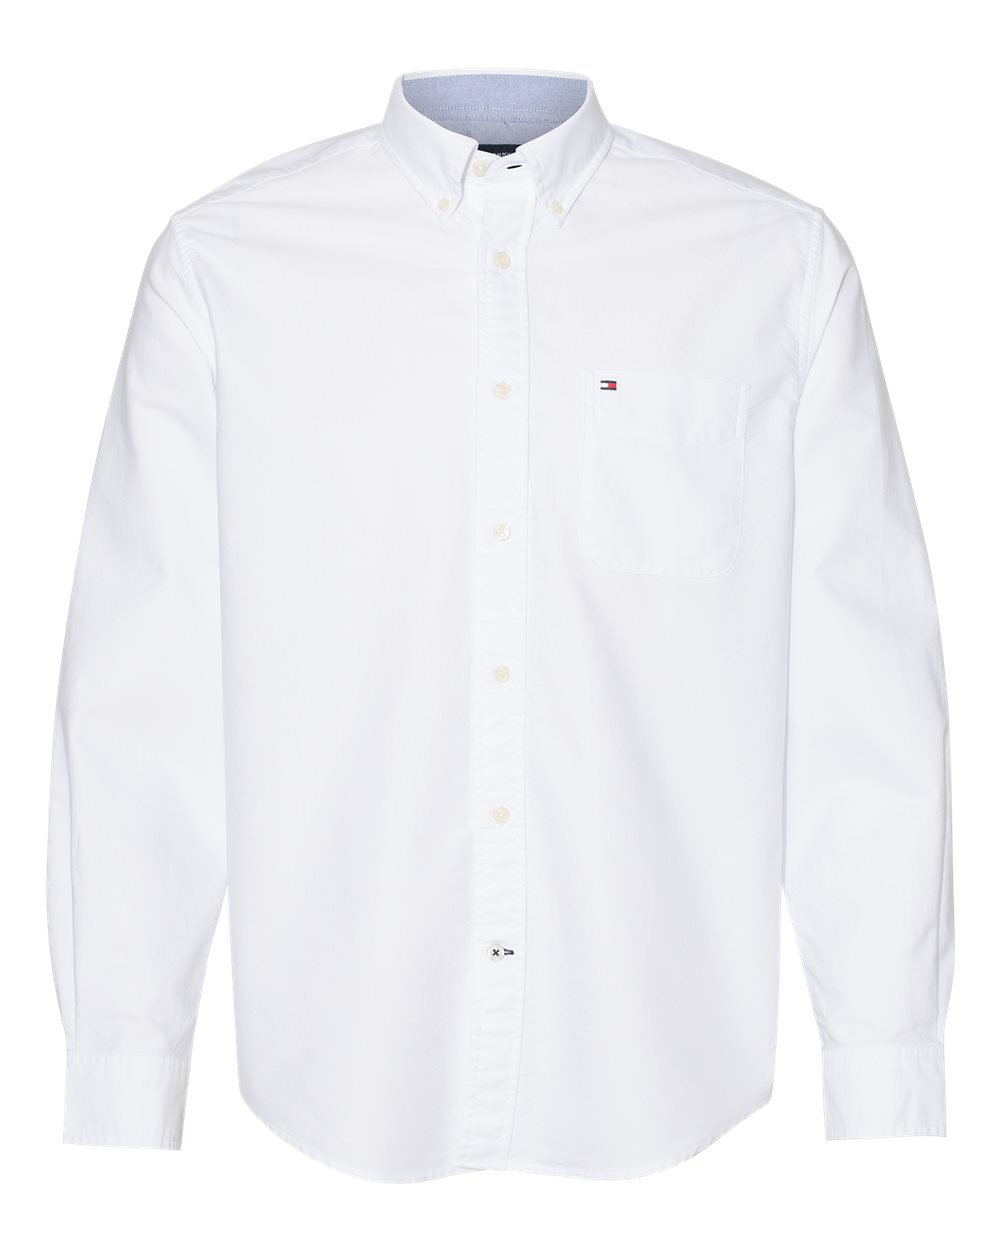 Tommy Hilfiger 13H1864 - New England Solid Oxford Shirt